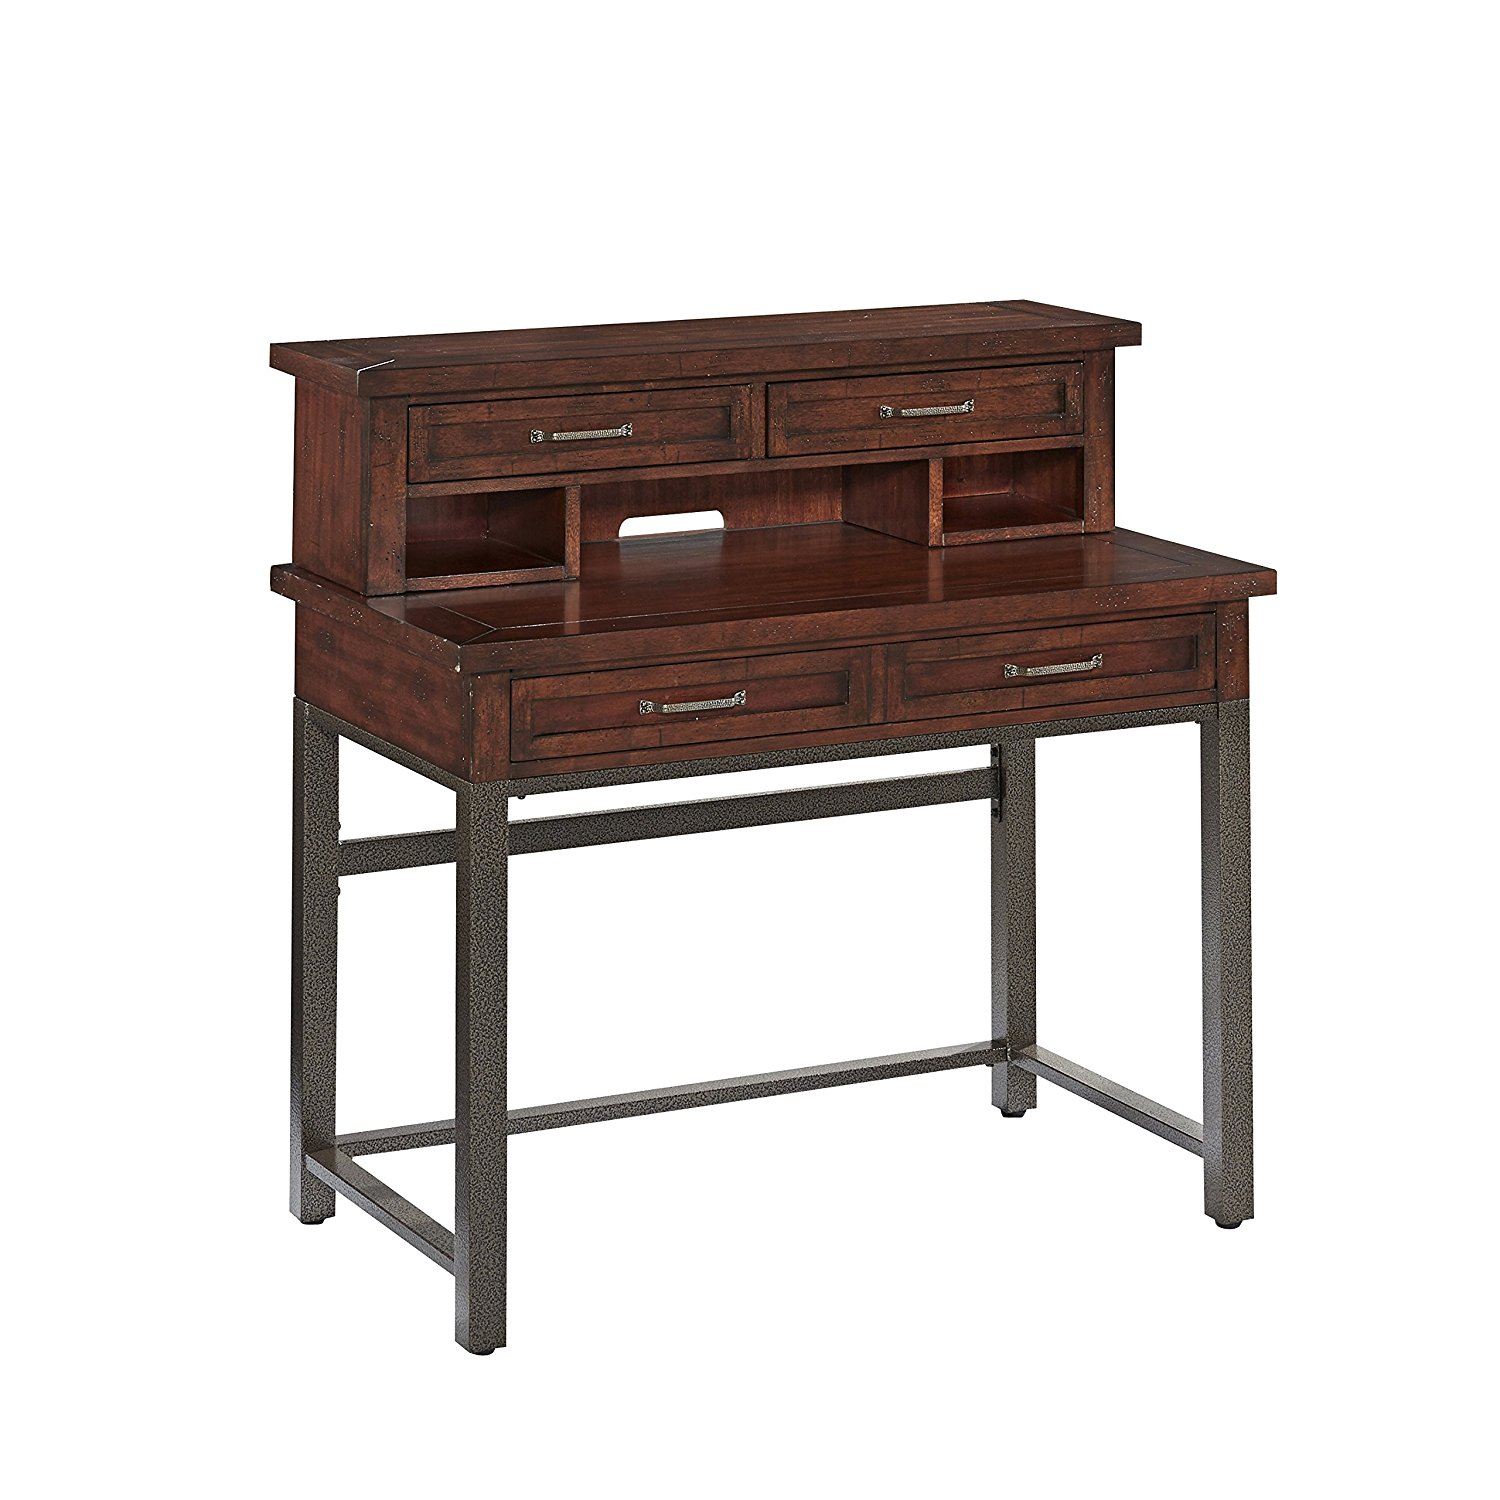 Home Styles Model 5411-162 Cabin Creek Student Desk and Hutch, Heavily Distressed Multi-Step Chestnut Finish